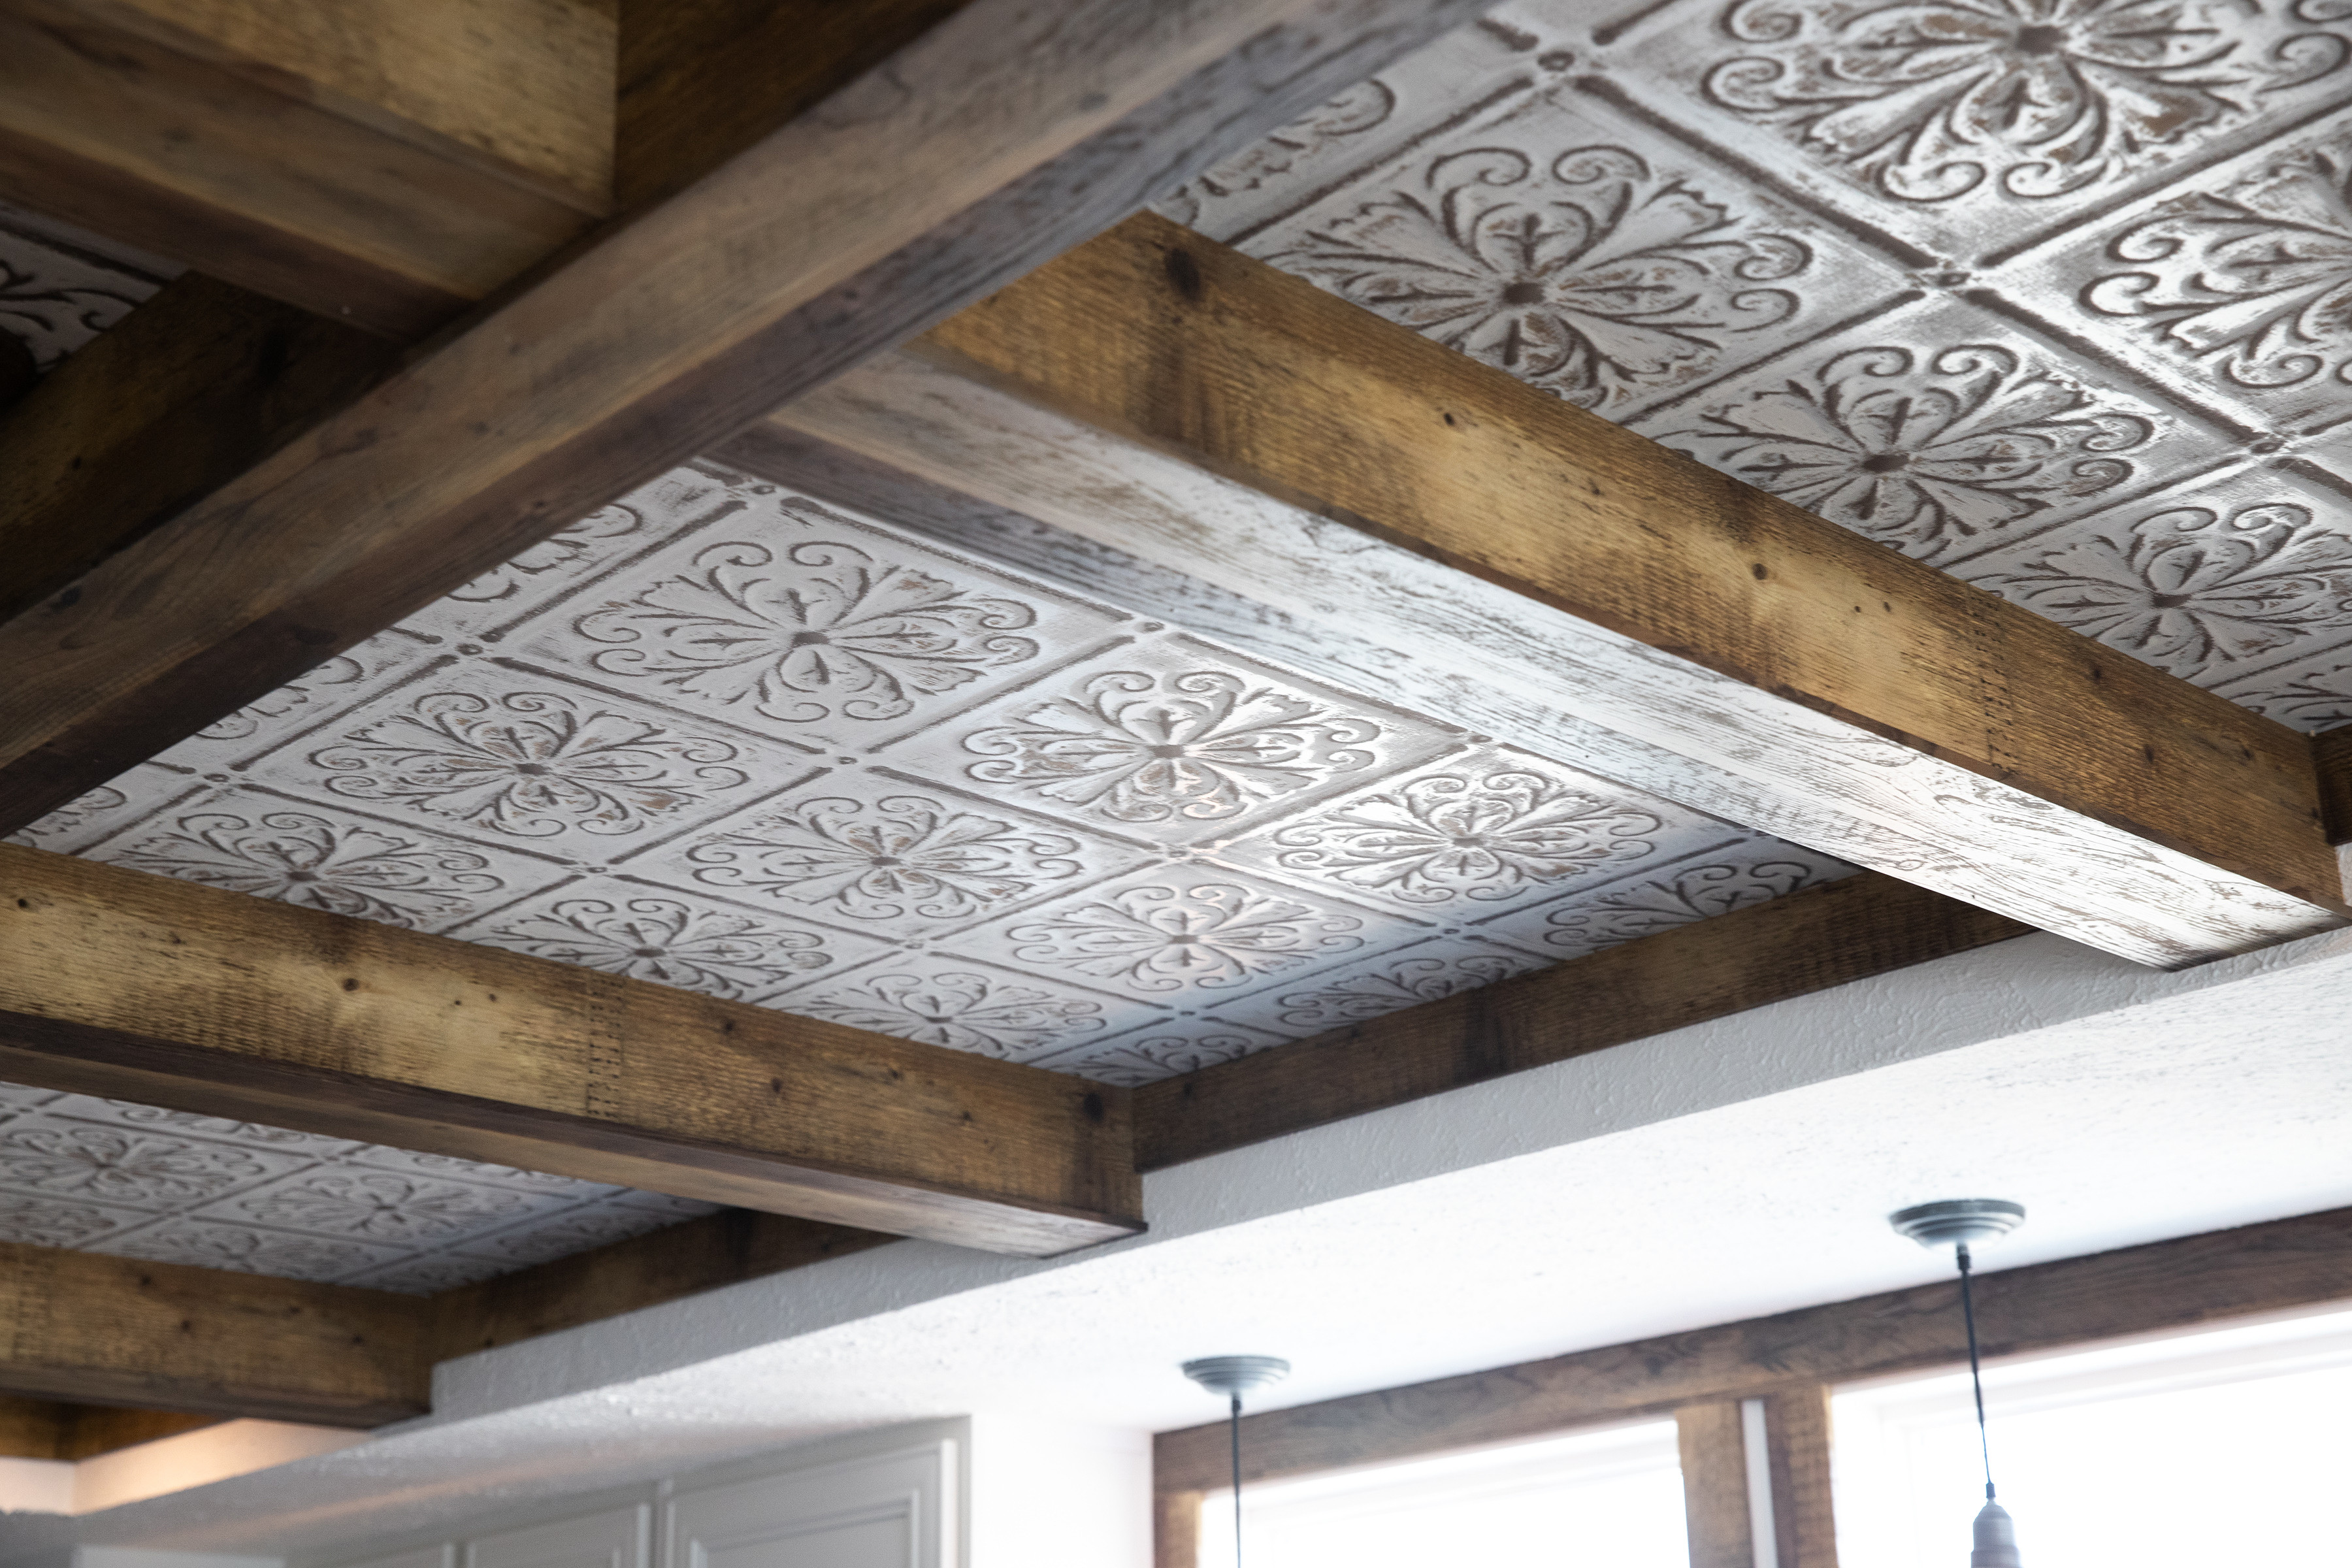 Manufactured home ceiling with rustic wooden coffered ceilings and metal lacing designs in between.